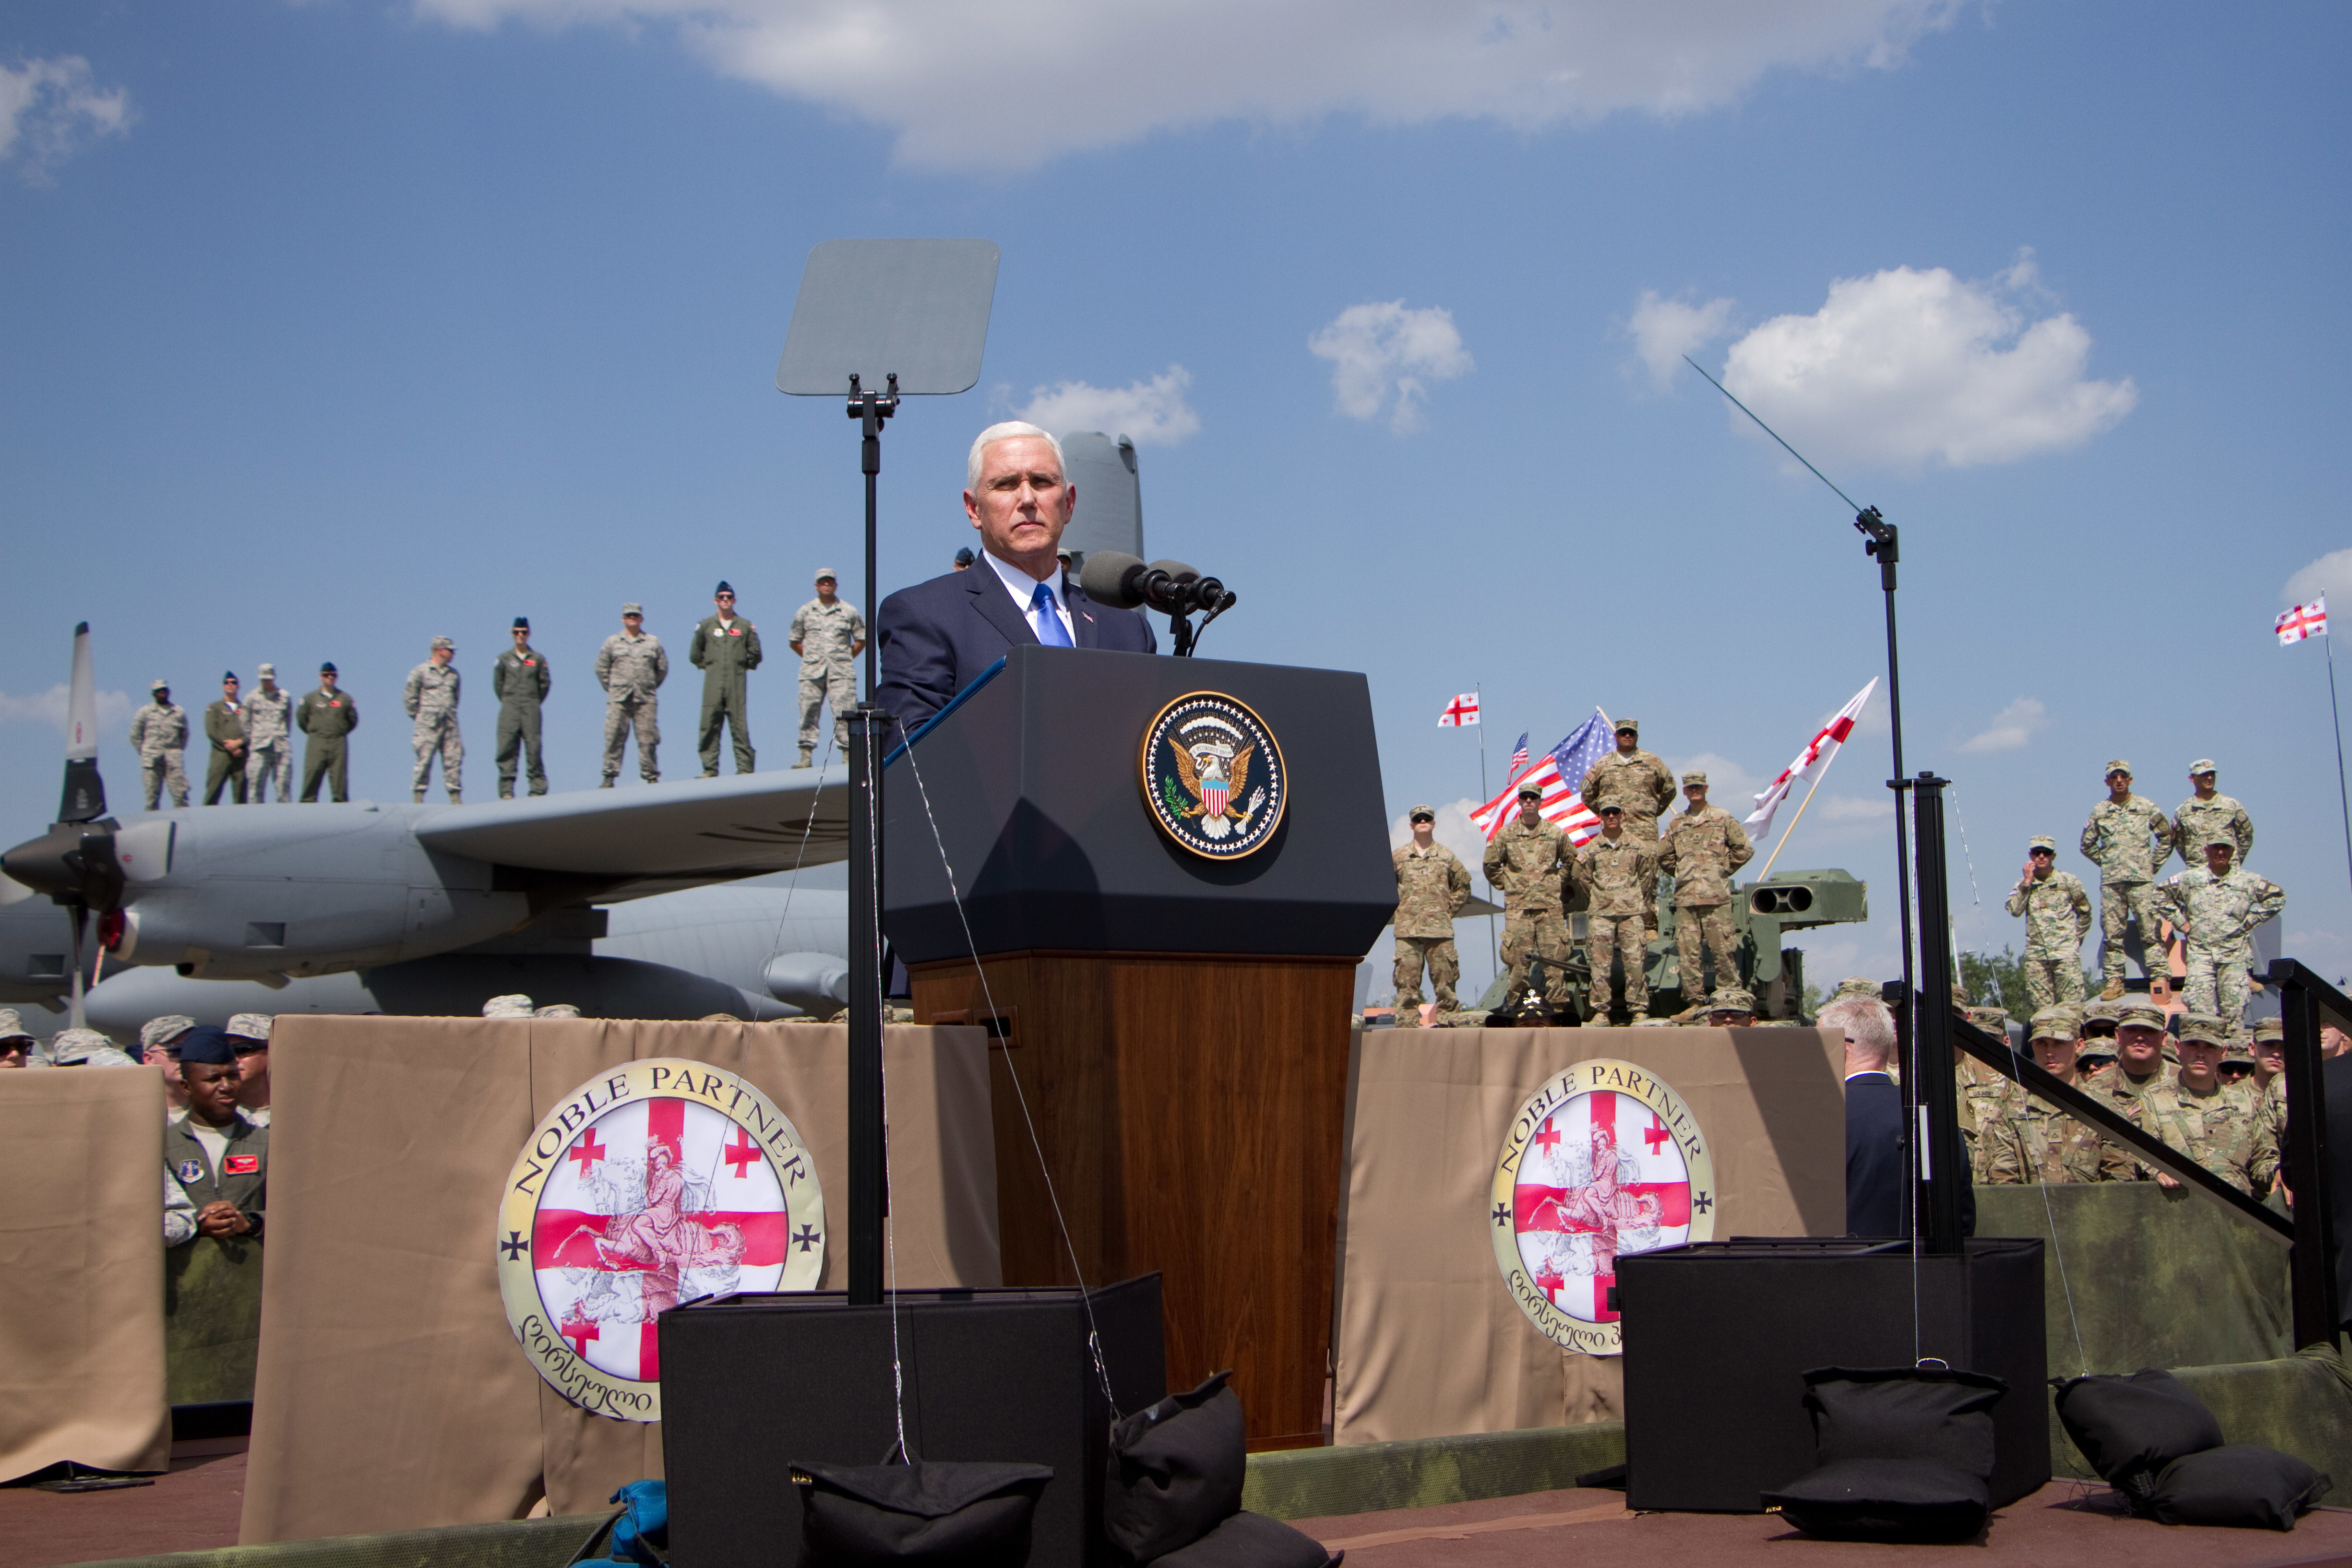 Vice President Mike Pence gives speech to U.S. and Georgian Soldiers Aug. 1, 2017 in Tbilisi,  Georgia during Noble Partner 17. Noble Partner 17 is a U.S. Army Europe-led exercise designed to support the training, progression and eventual certification of Georgia's second light infantry company's contribution to the NATO Response Force. The training will take place at the Vaziani Training Area.